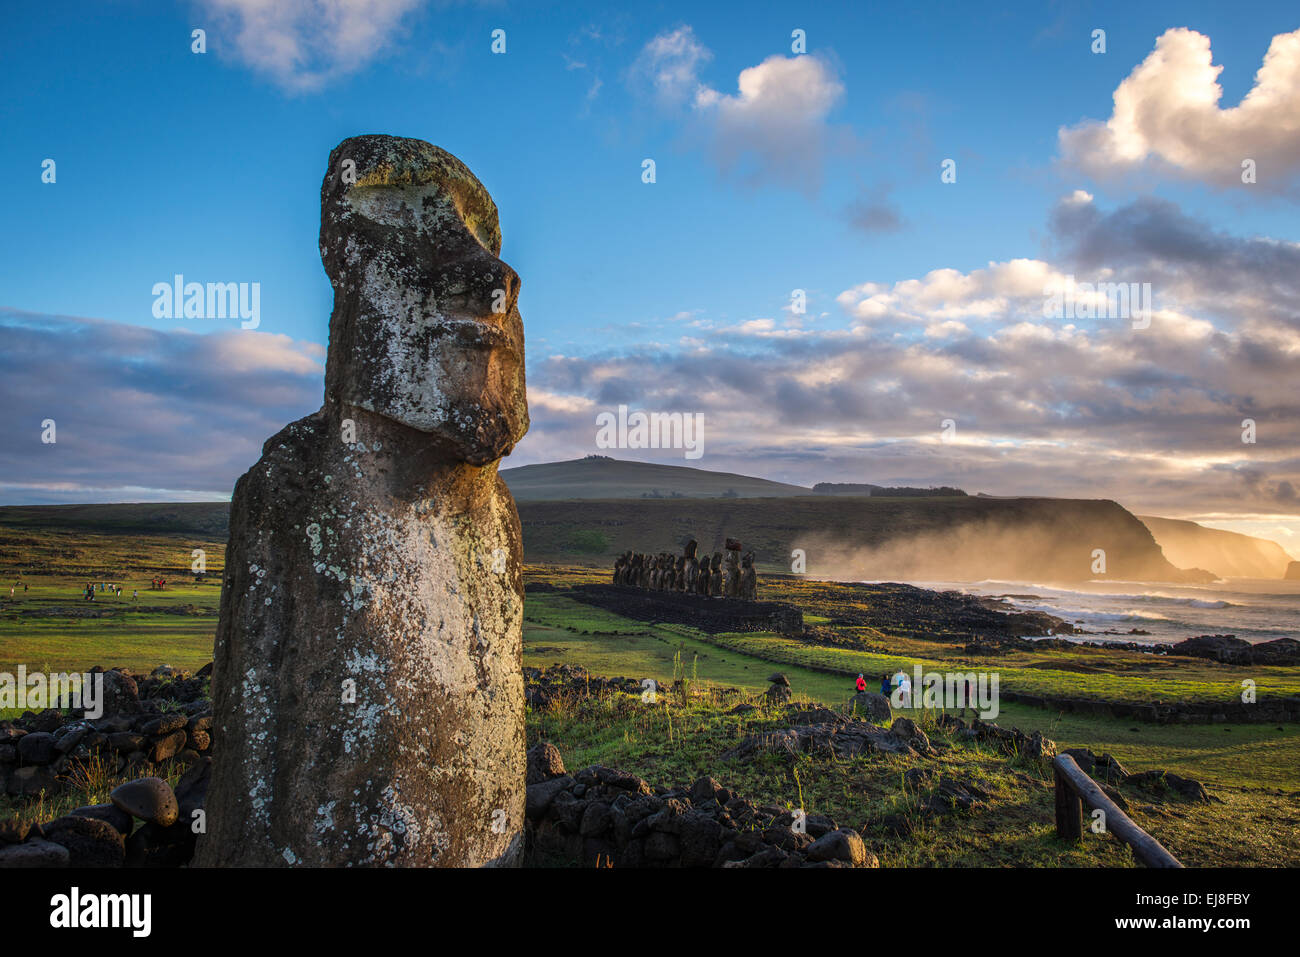 'Travelling' Moai in foreground with Tongariki in background, Rapa Nui, Easter Island, Chile - Stock Image